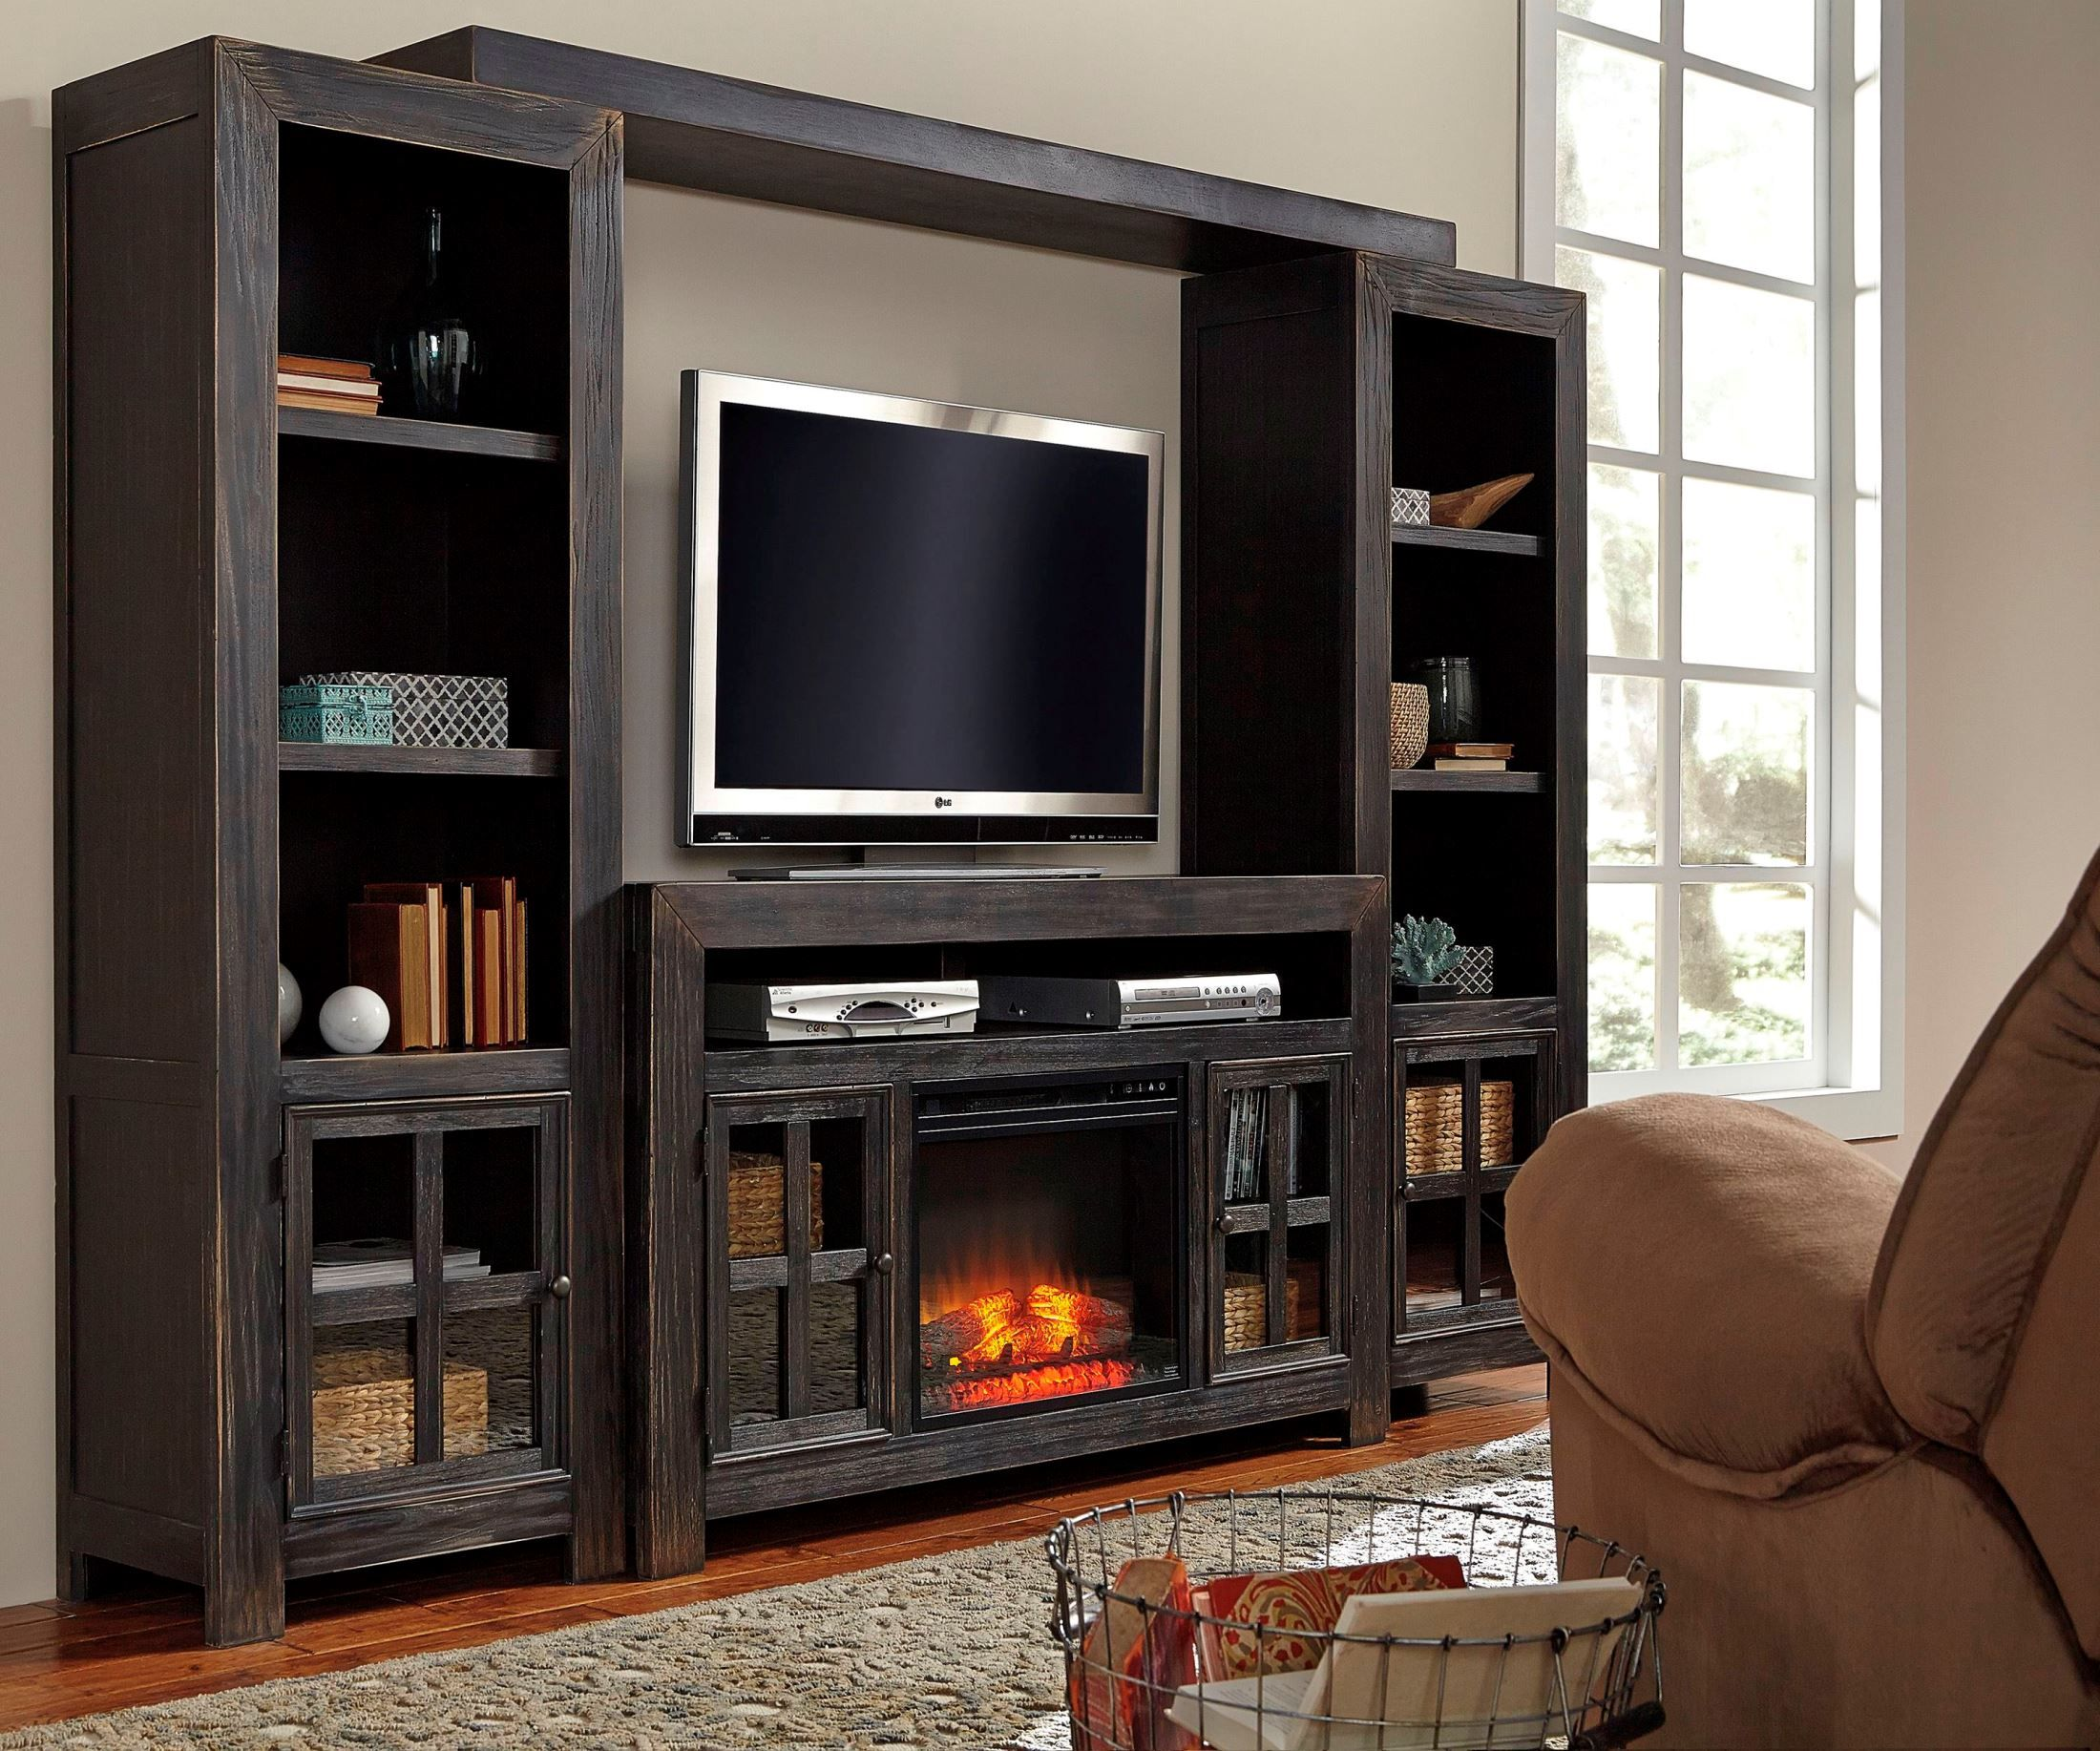 Wall Unit Entertainment Center With Fireplace